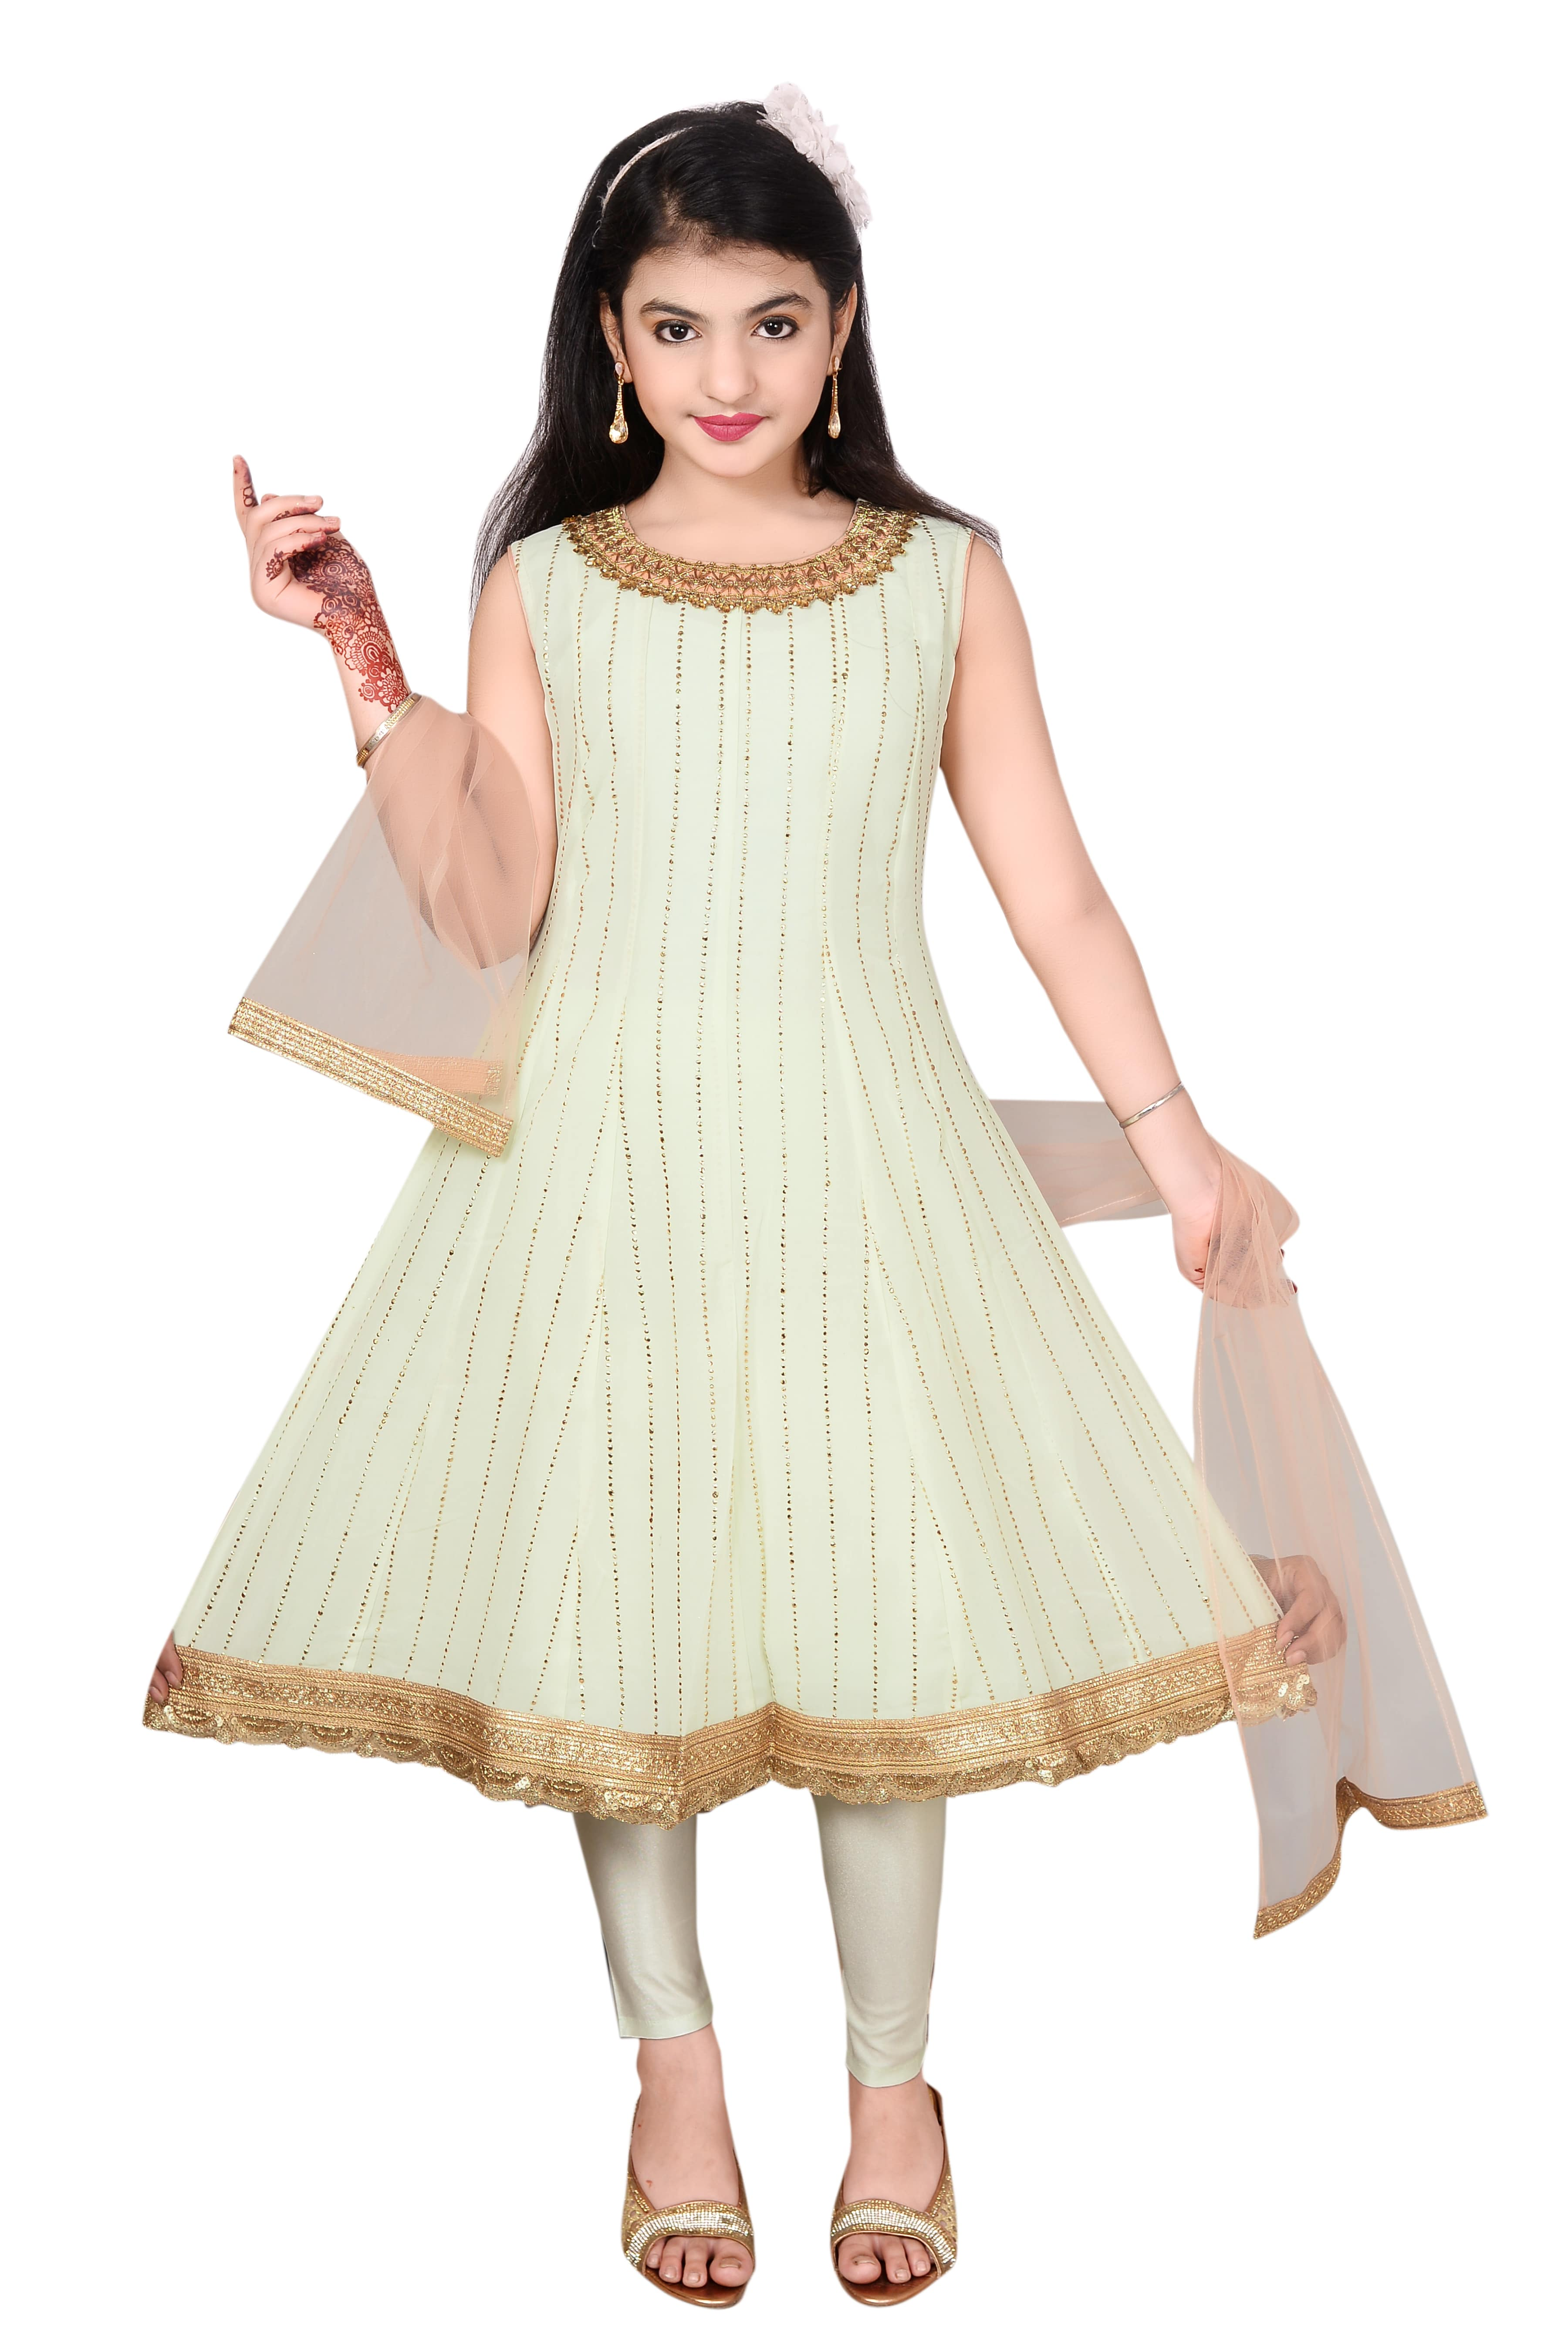 Kids Ethnic Wear In Meerut